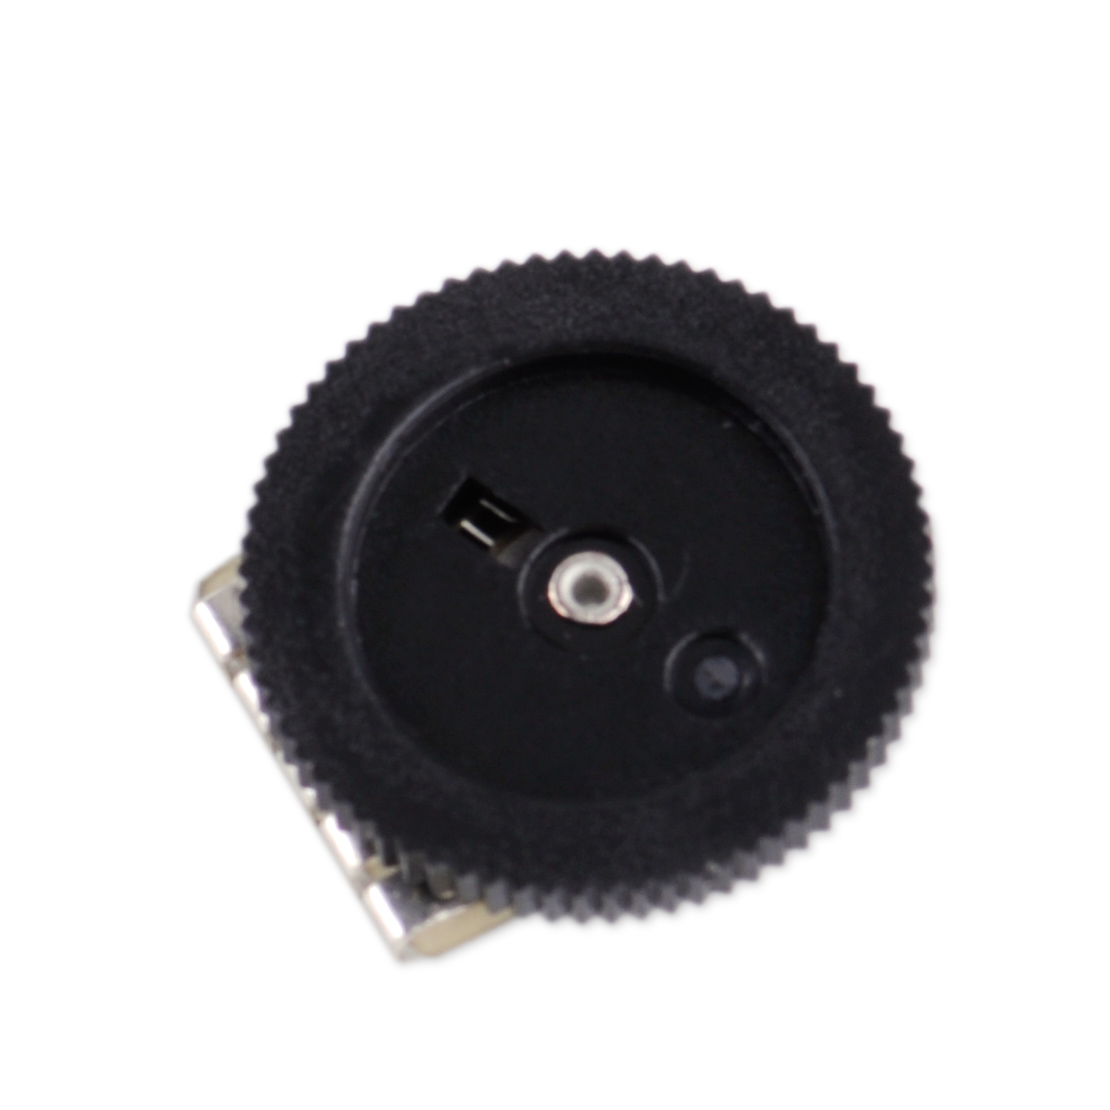 5pcs B103 10K Double Dial Wheel Duplex Gear Potentiometer fit for Radio Stereo.